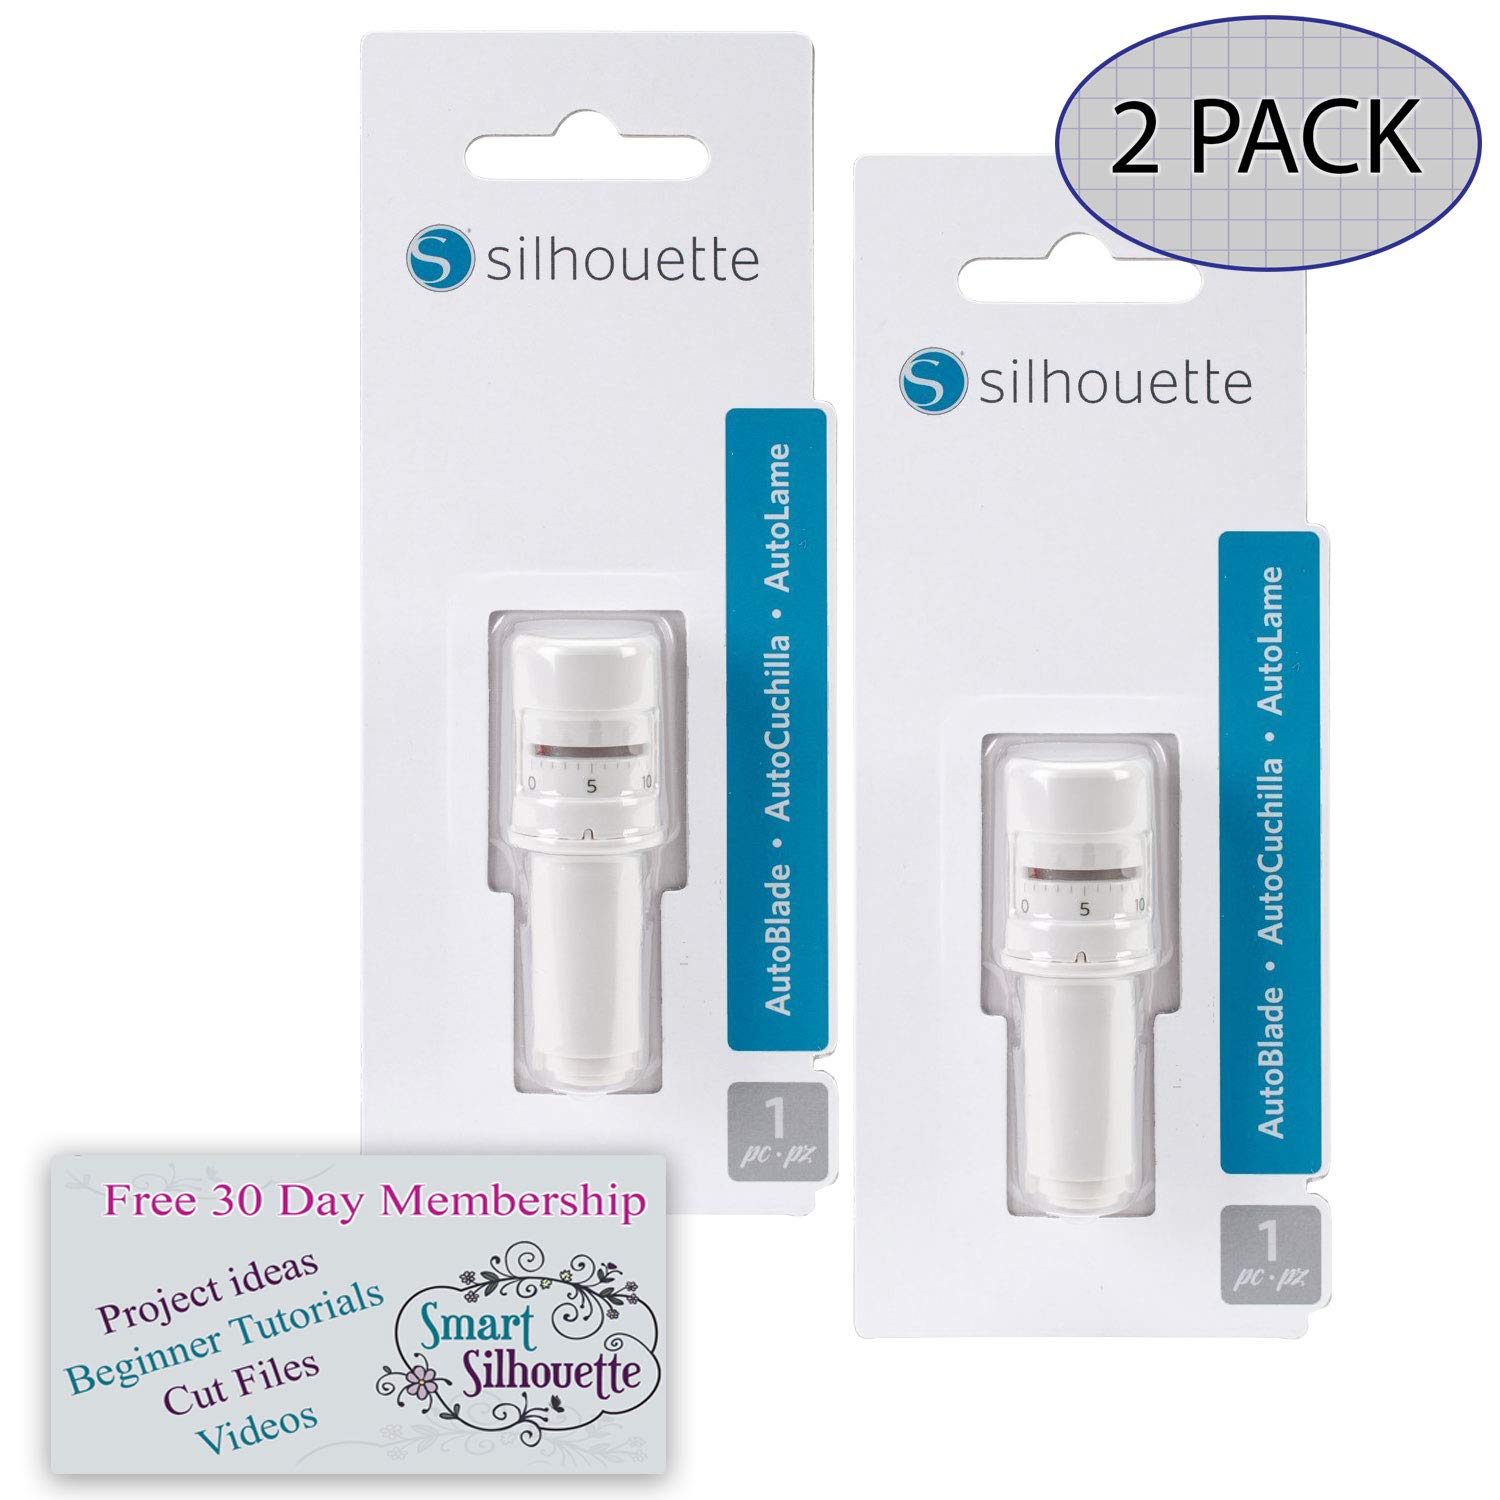 Silhouette Autoblade Replacement for Cameo 3 and Portrait 2 (2 Pack) with 30 Day Subscription to Smart Silhouette